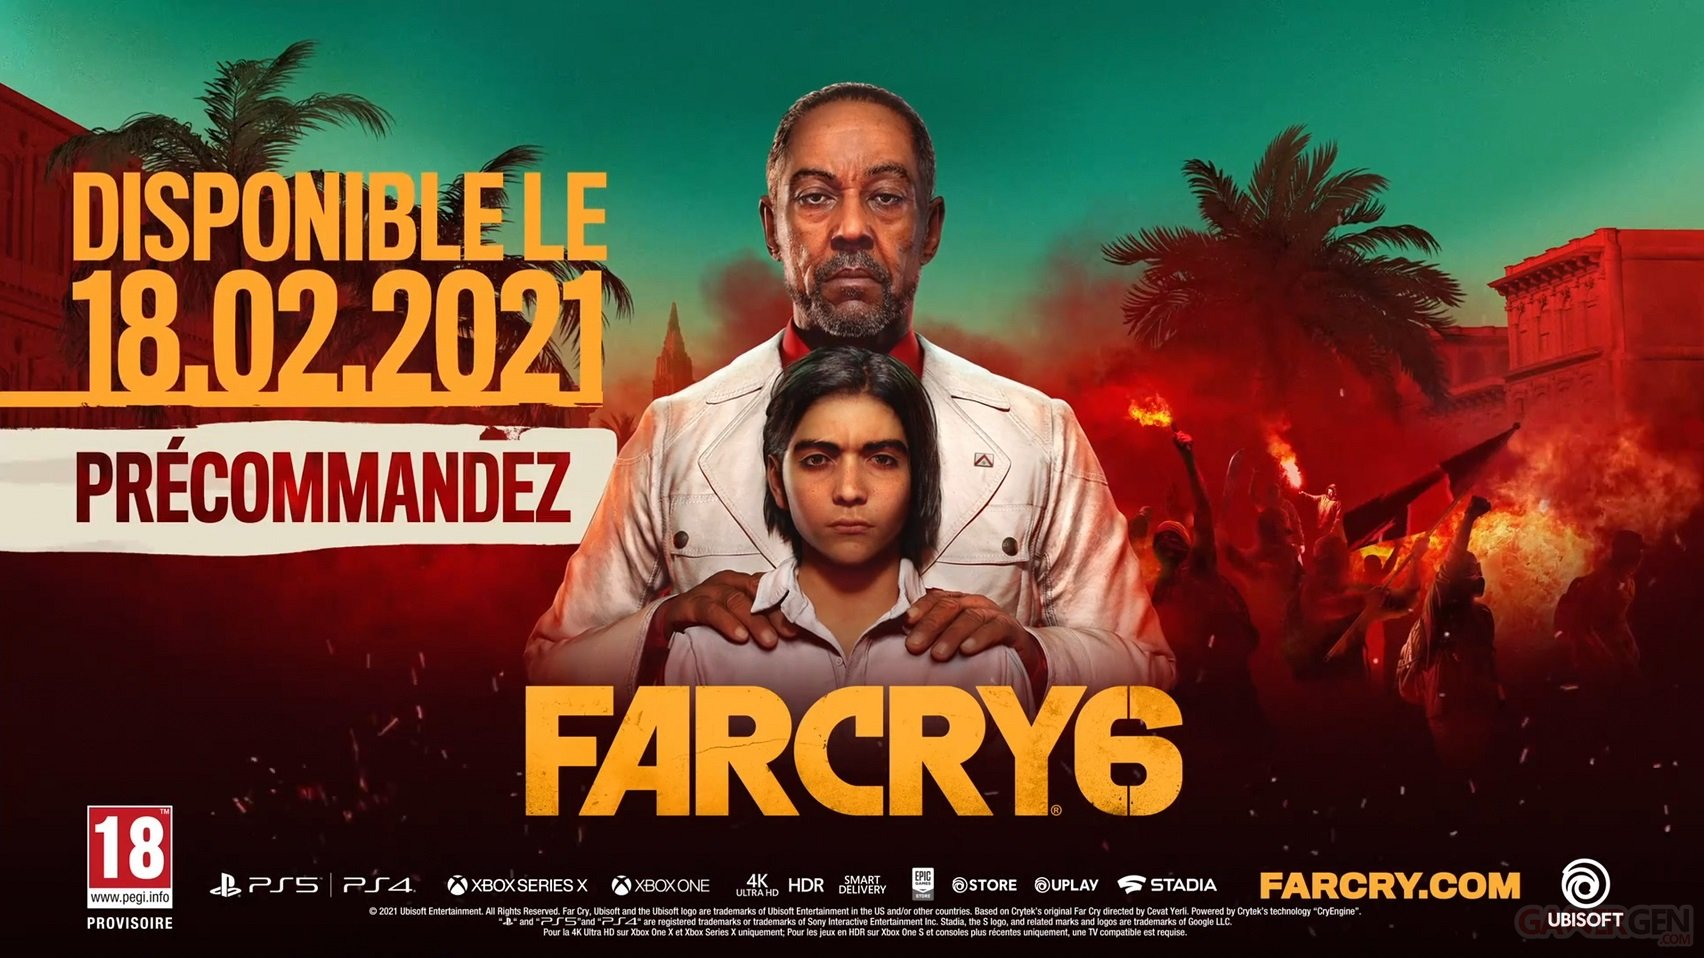 Far Cry 6 Ubisoft Forward S Full Trailer Leaked With El Presidente And His Son Archynewsy